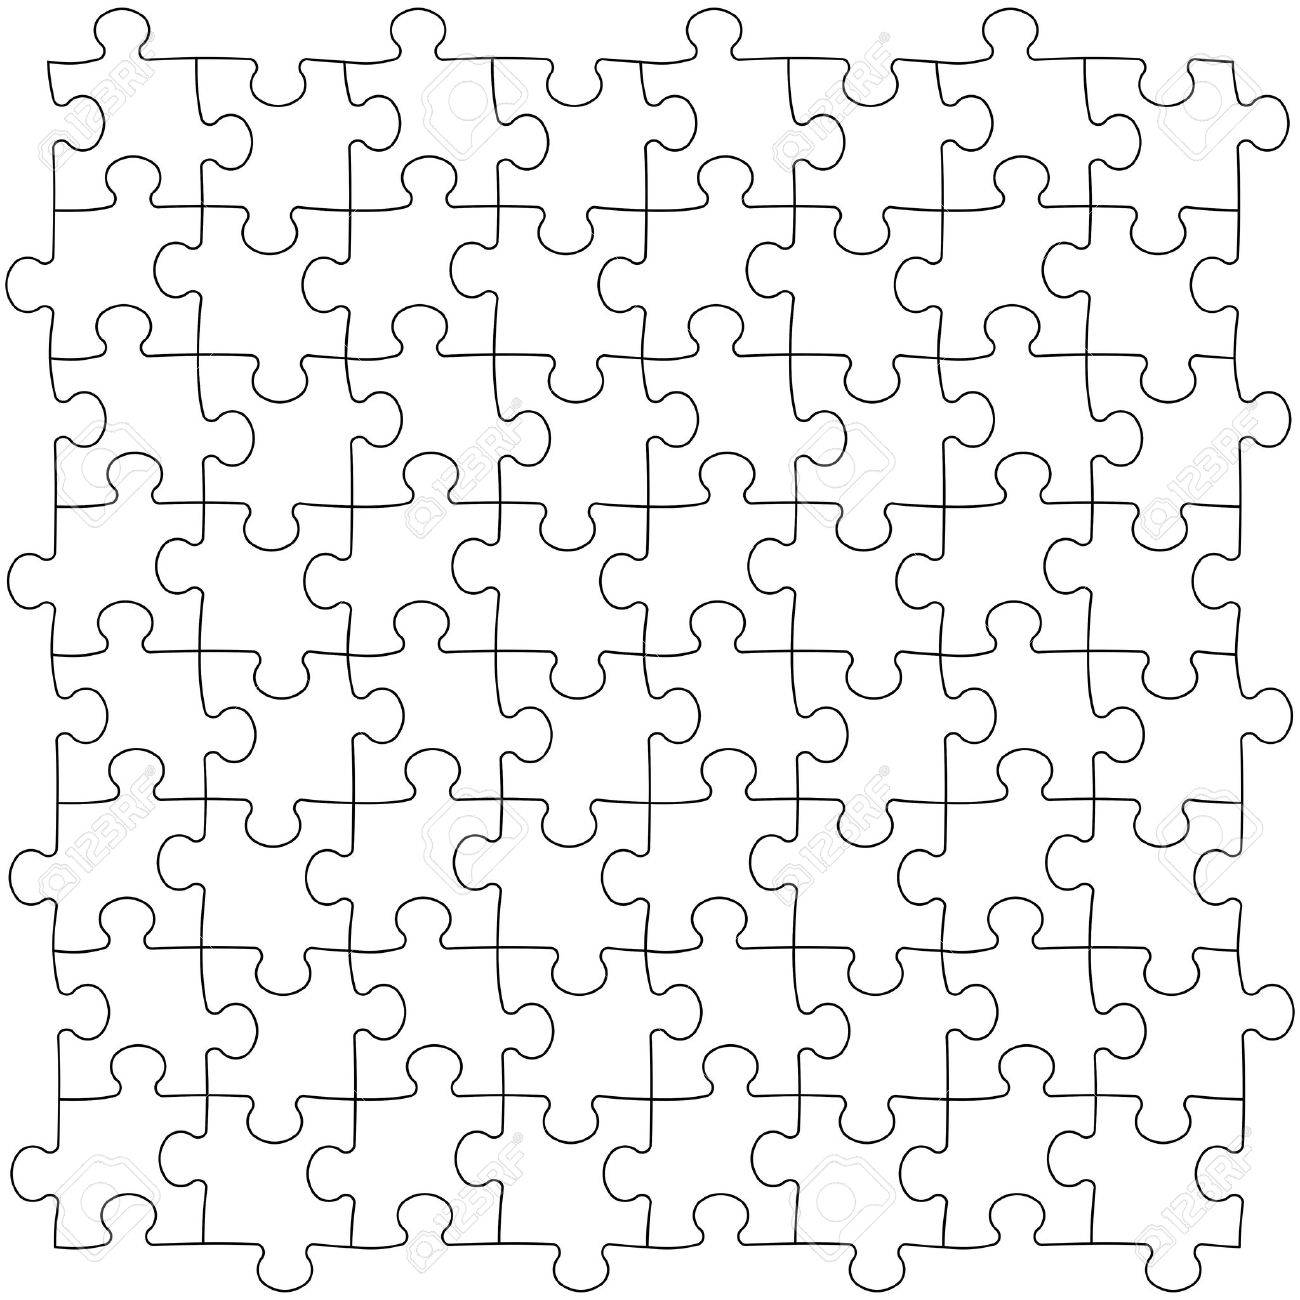 Puzzles Template Royalty Free Cliparts, Vectors, And Stock ...